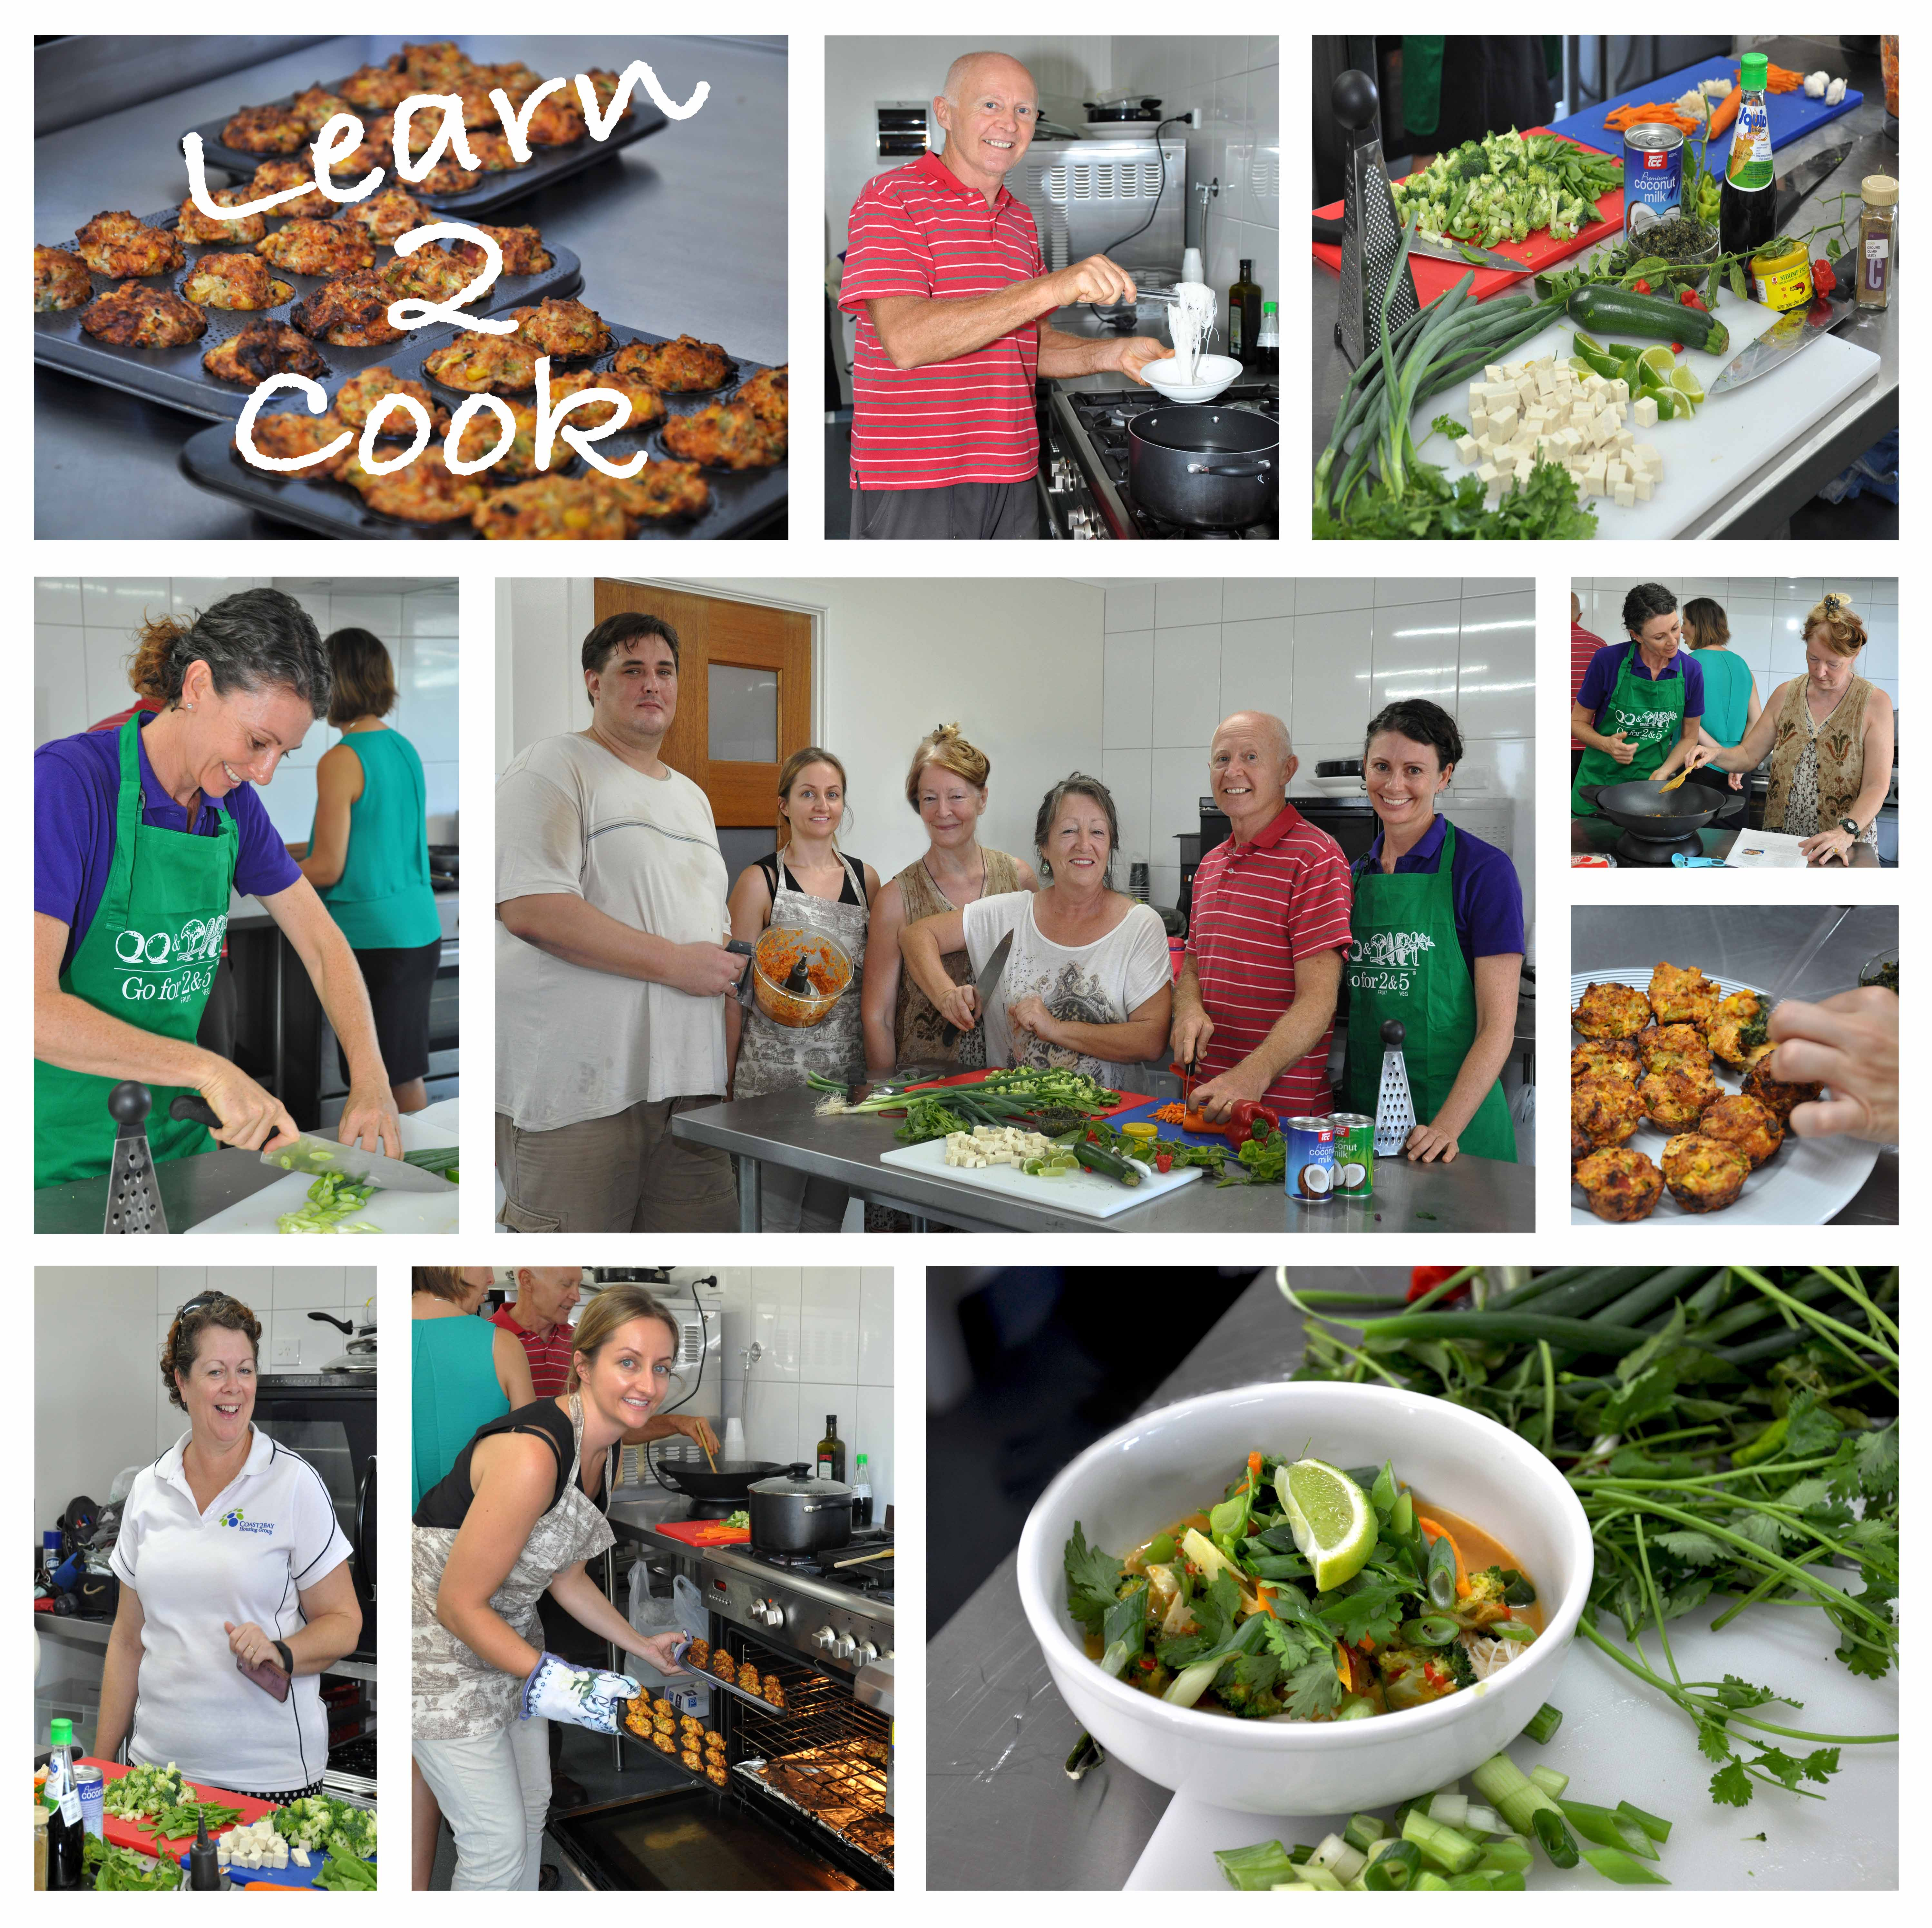 Learn2Cook C2B